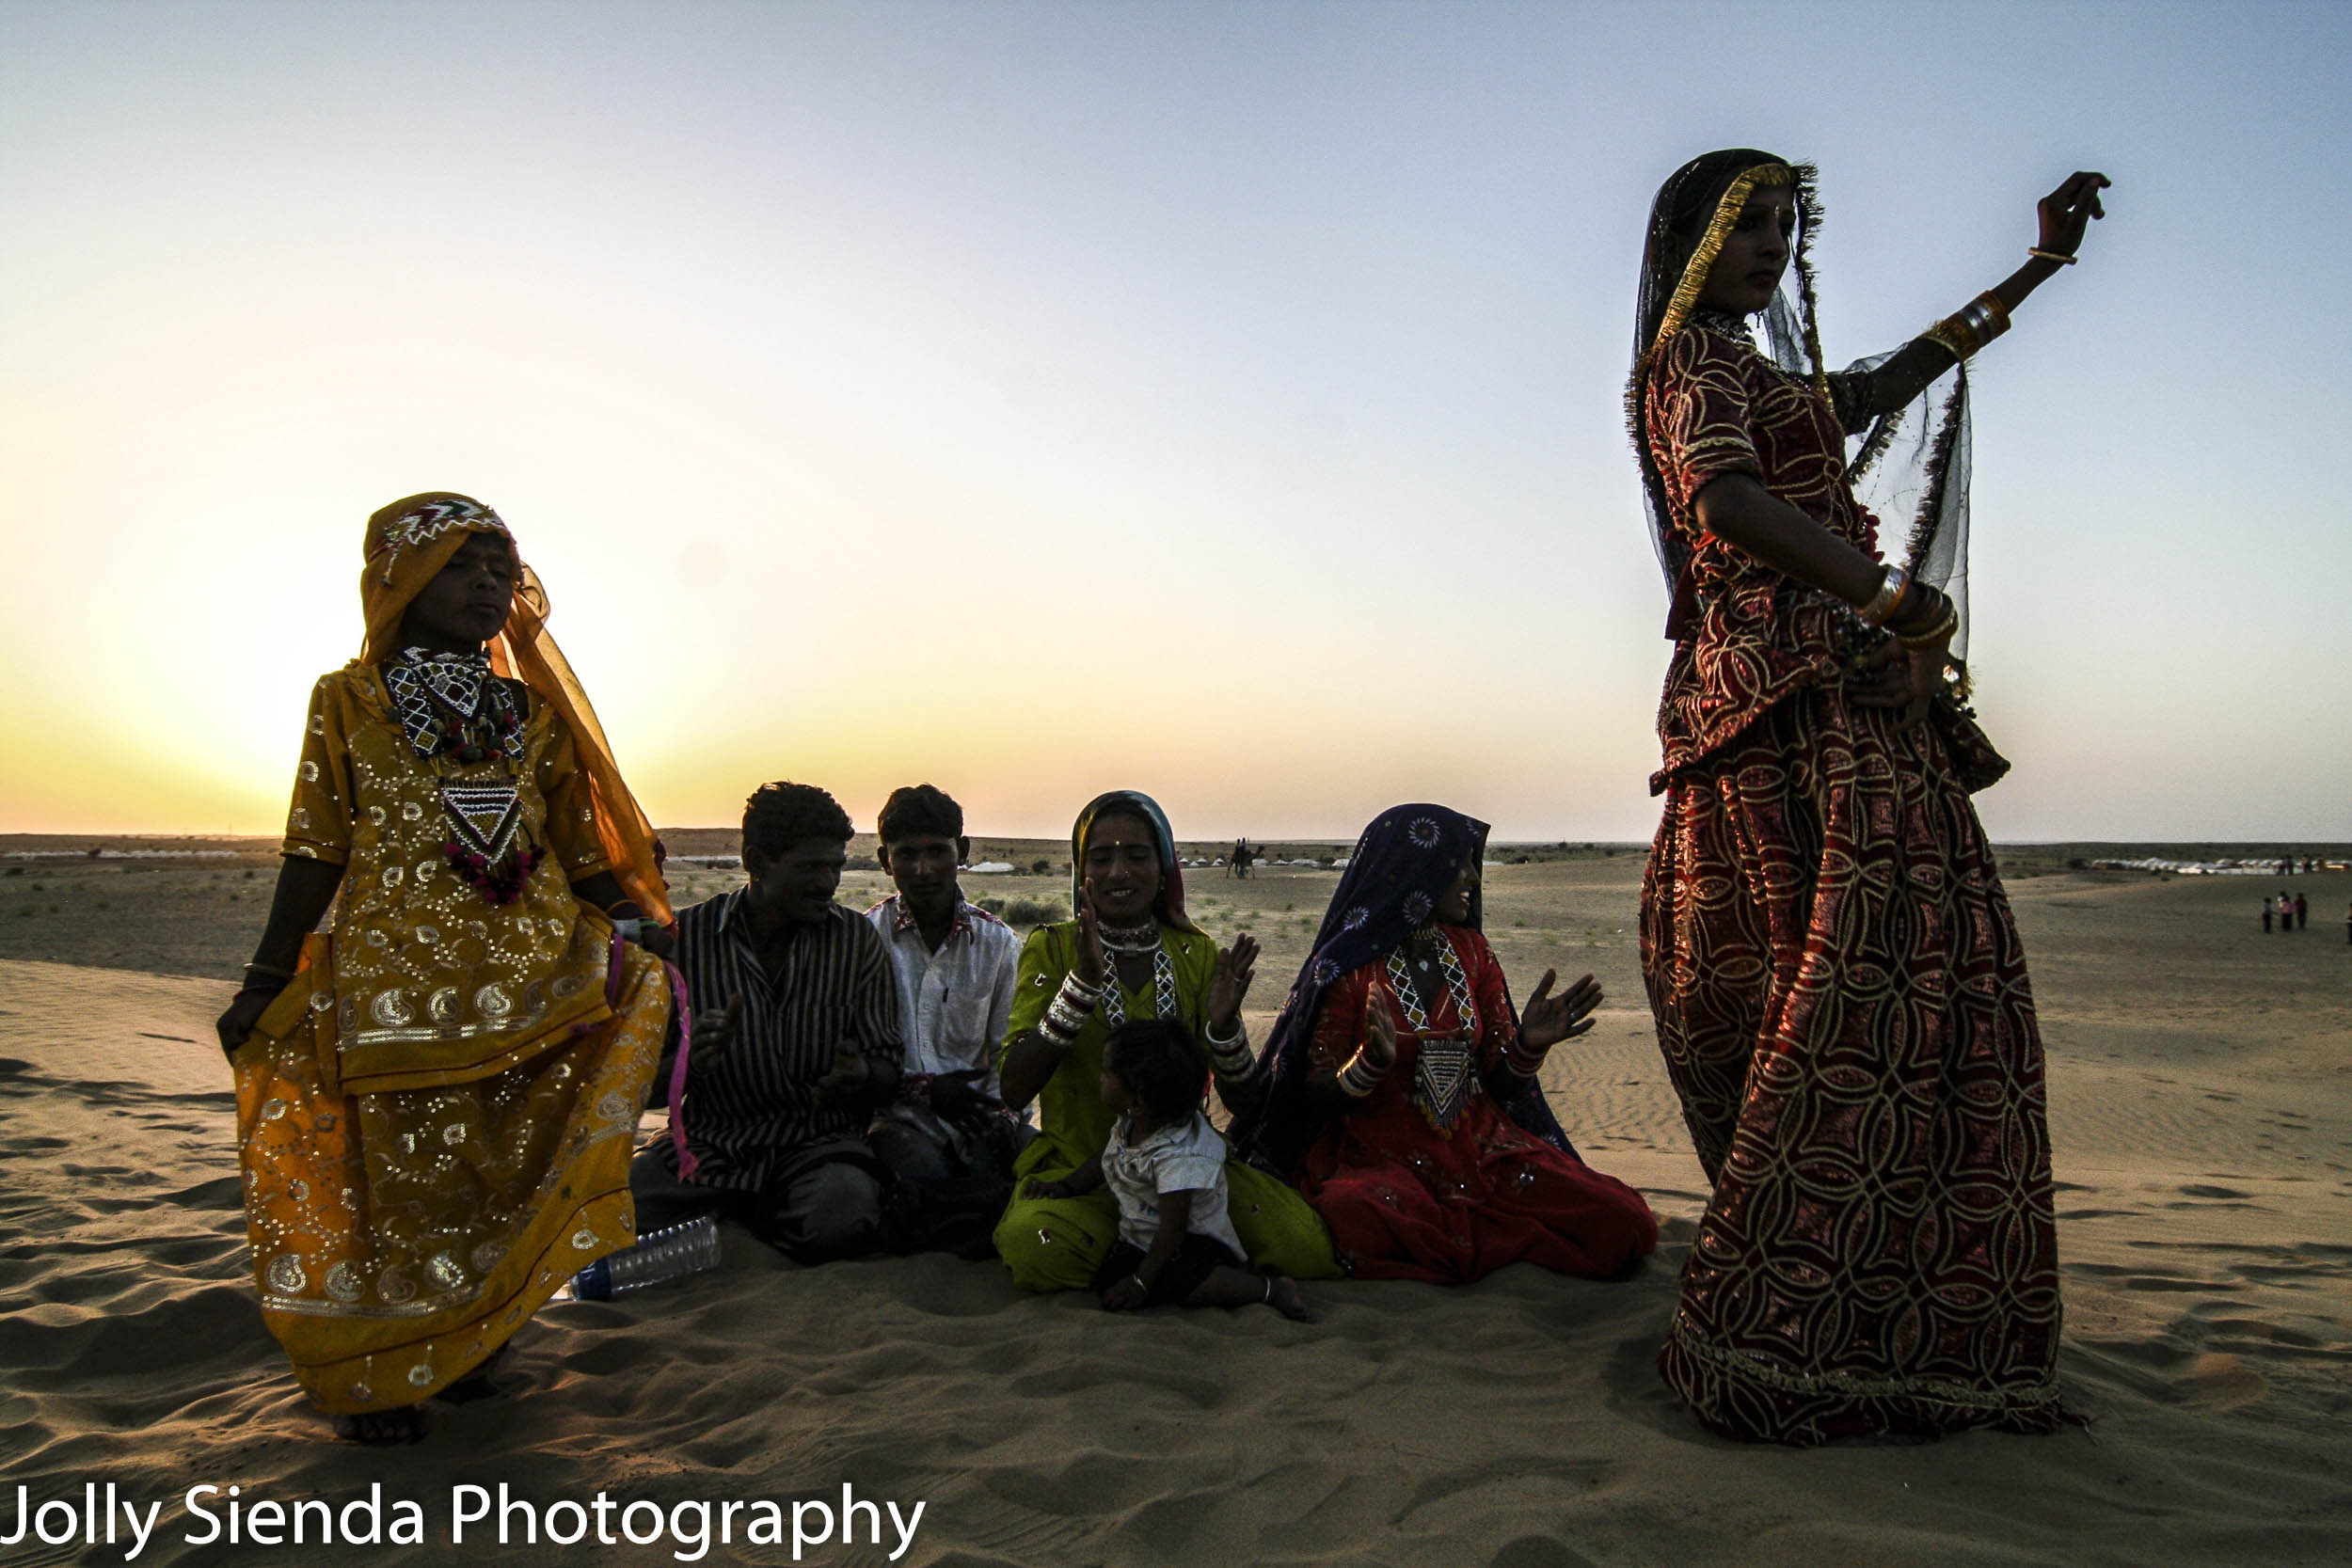 Bedouin, banjaras woman and child dance on sand, in tradional co